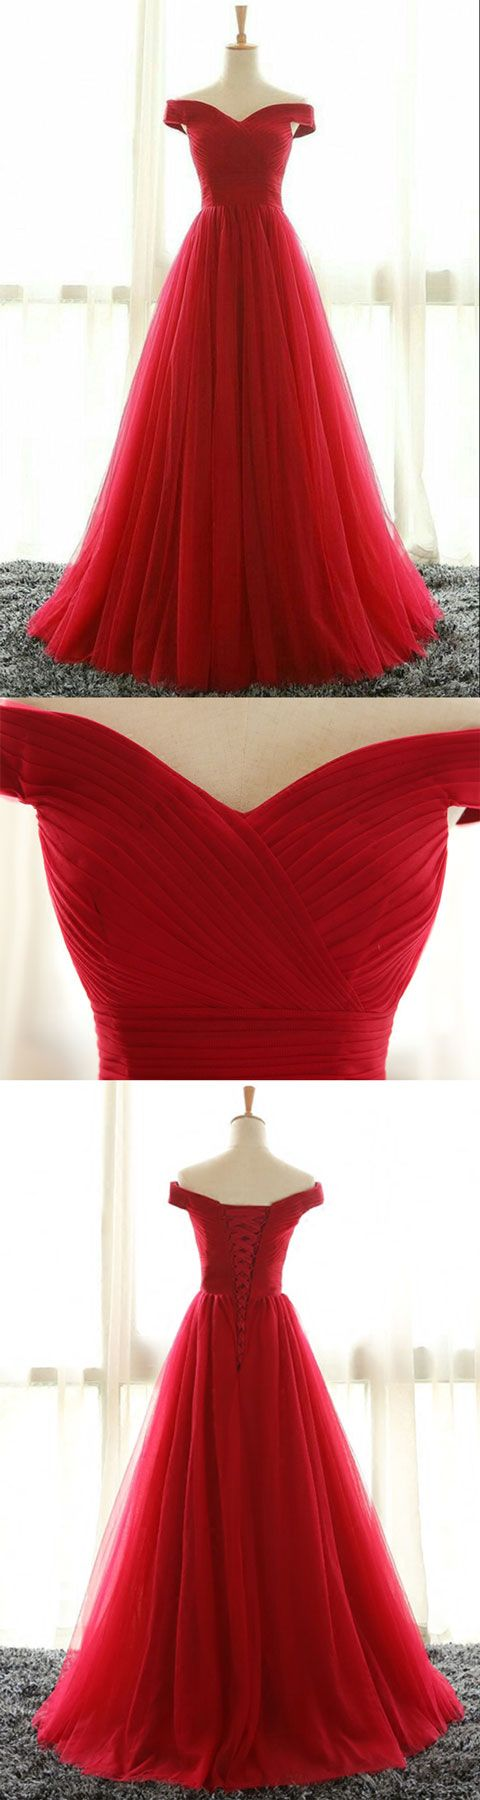 Red, Dress, Prom Dresses, Prom, Dress Red, Red Dress, Top, Polyvore ...